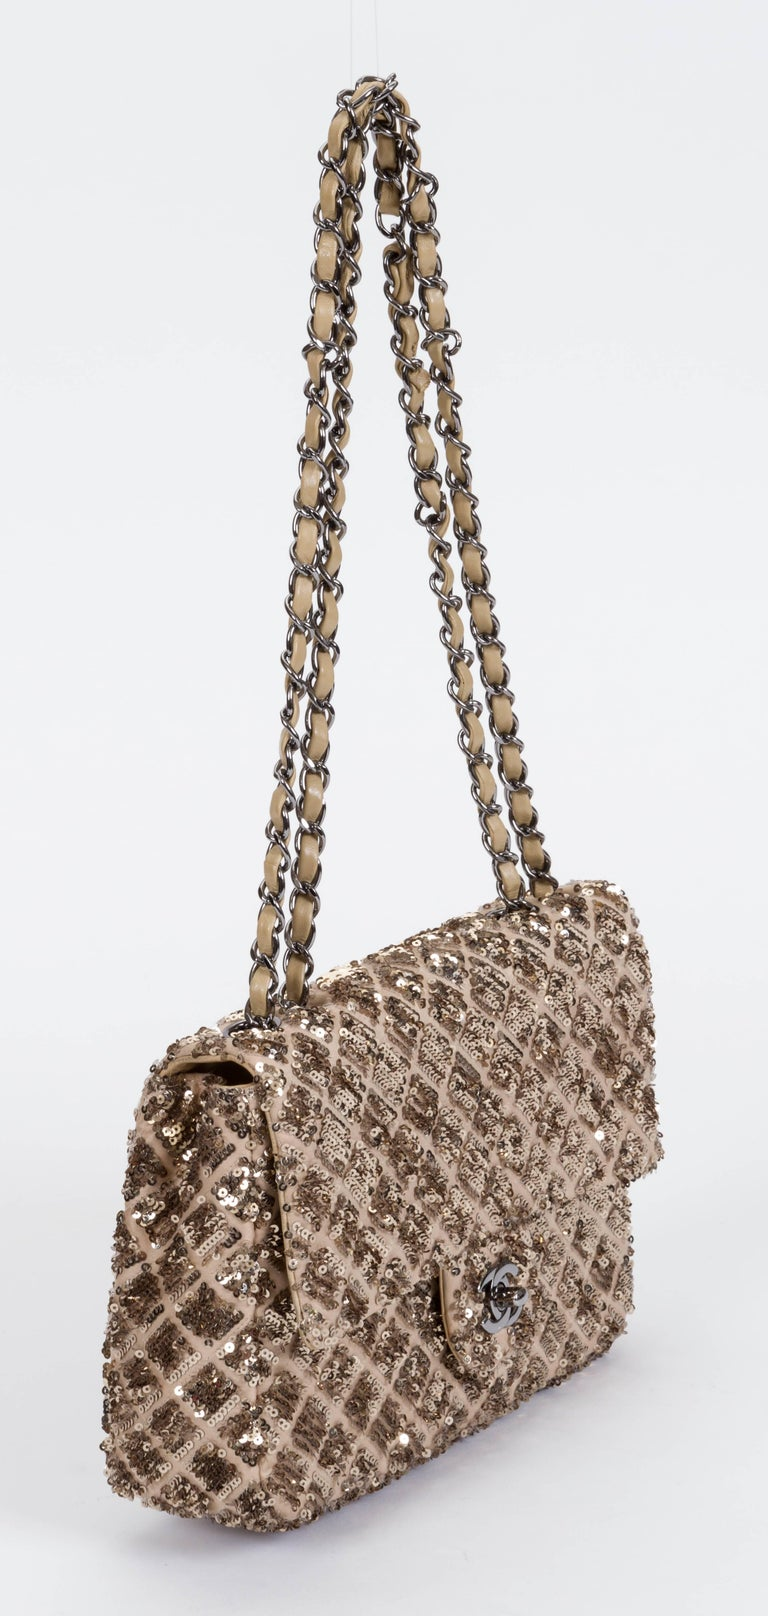 Chanel beige and gold sequins medium flap in excellent exterior condition. Interior stains, please refer to photos. Collection 2012/2013. Shoulder drop 11.5